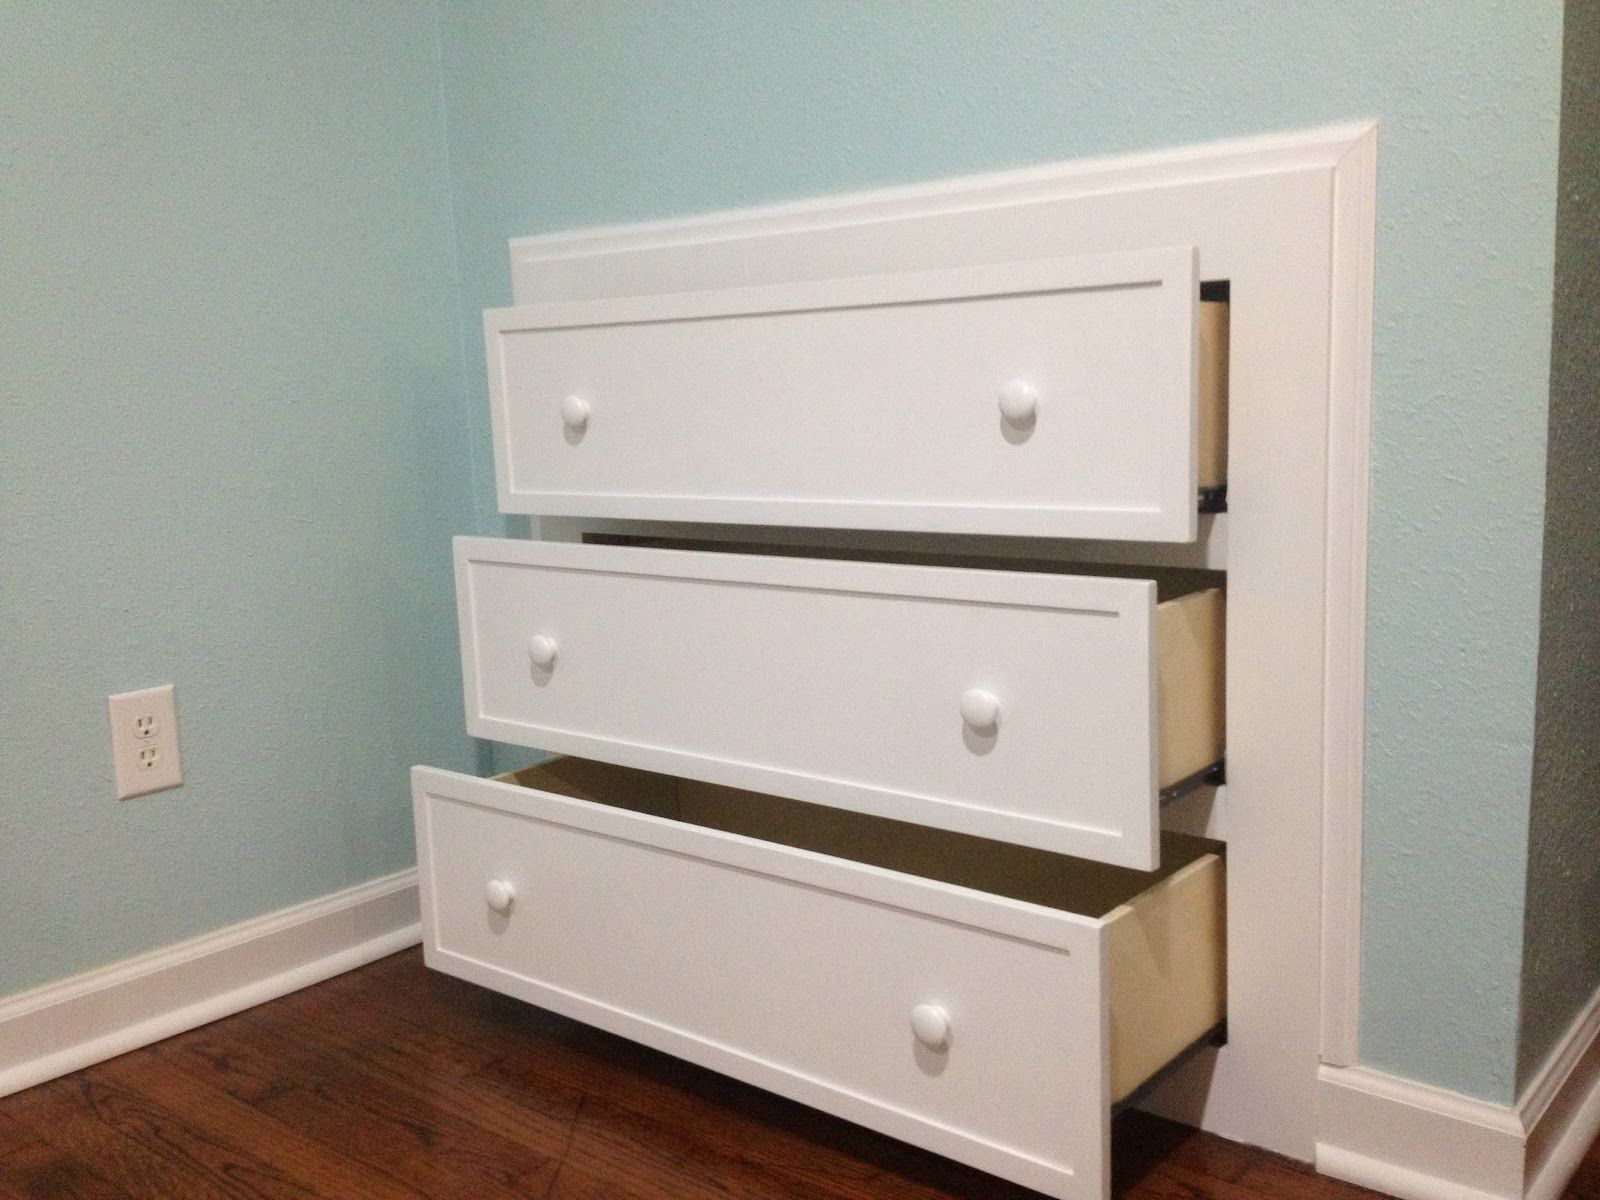 ikea of closets plus size small together armoire and for full combined with closet drawers dresser white